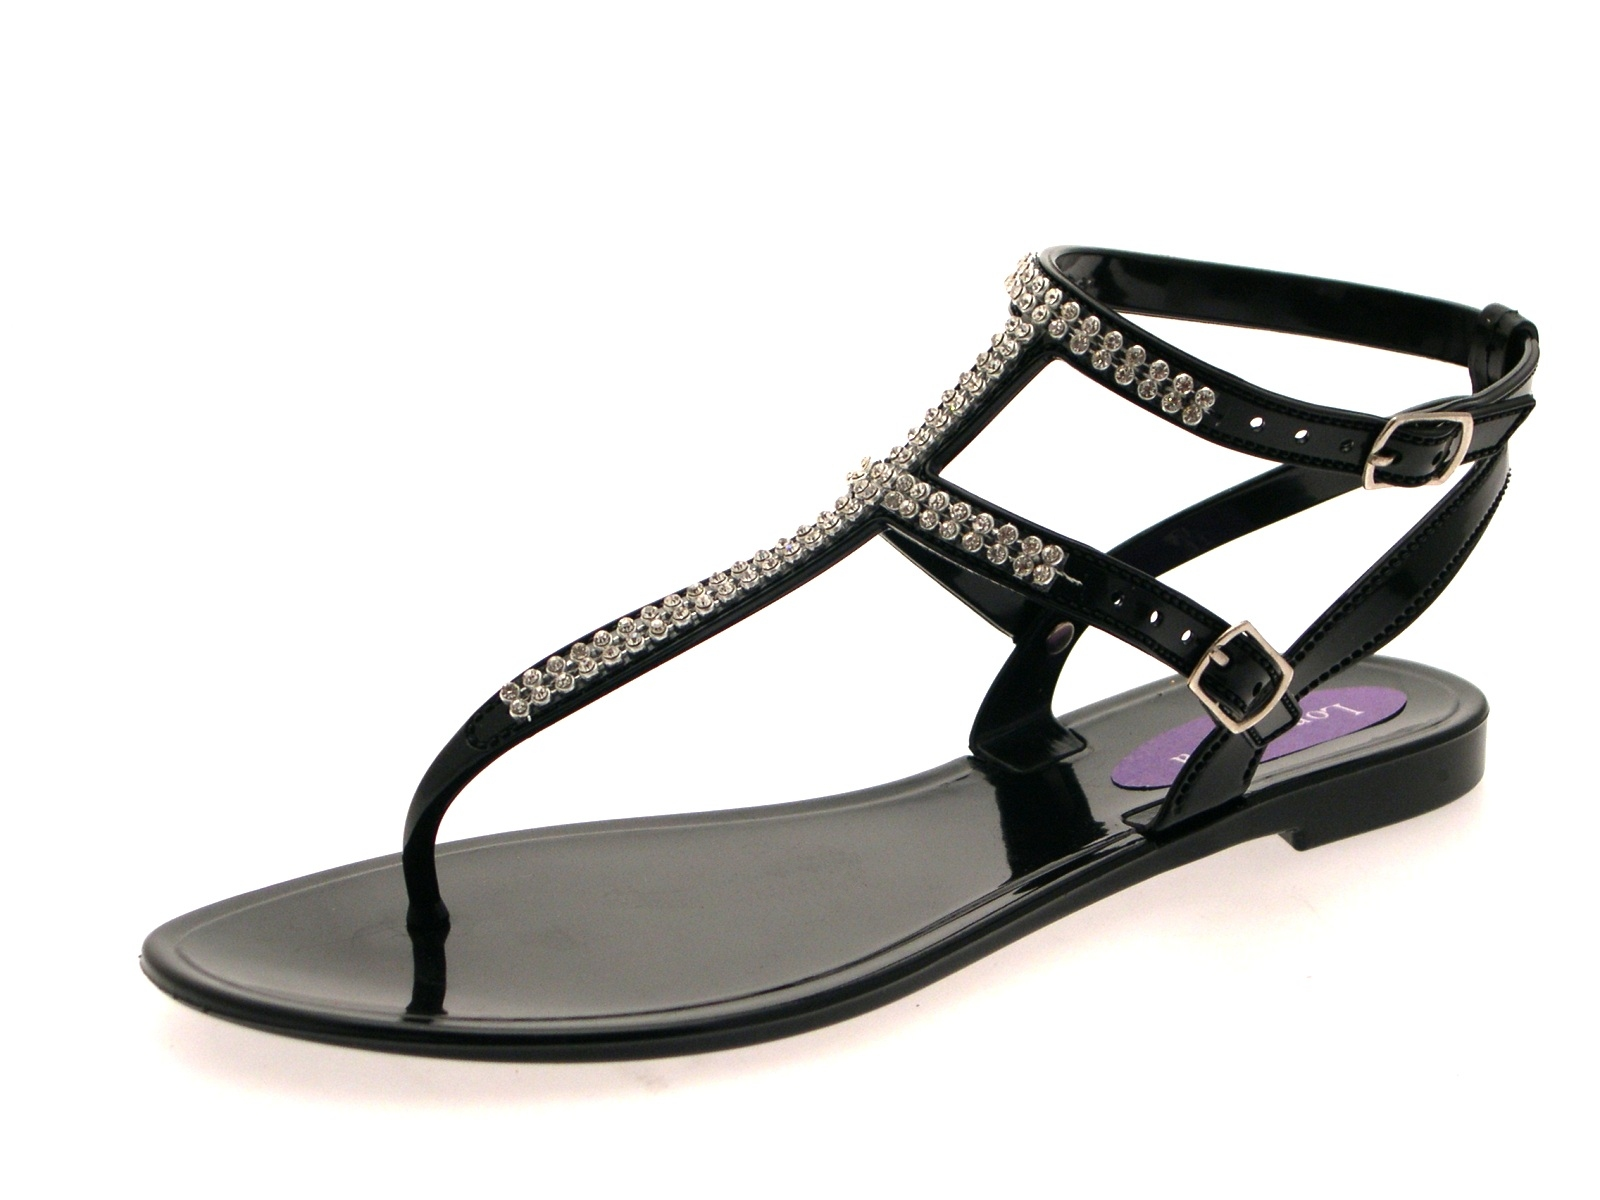 Womens diamante sandals summer flat jelly shoes double strap ladies size uk 3 8